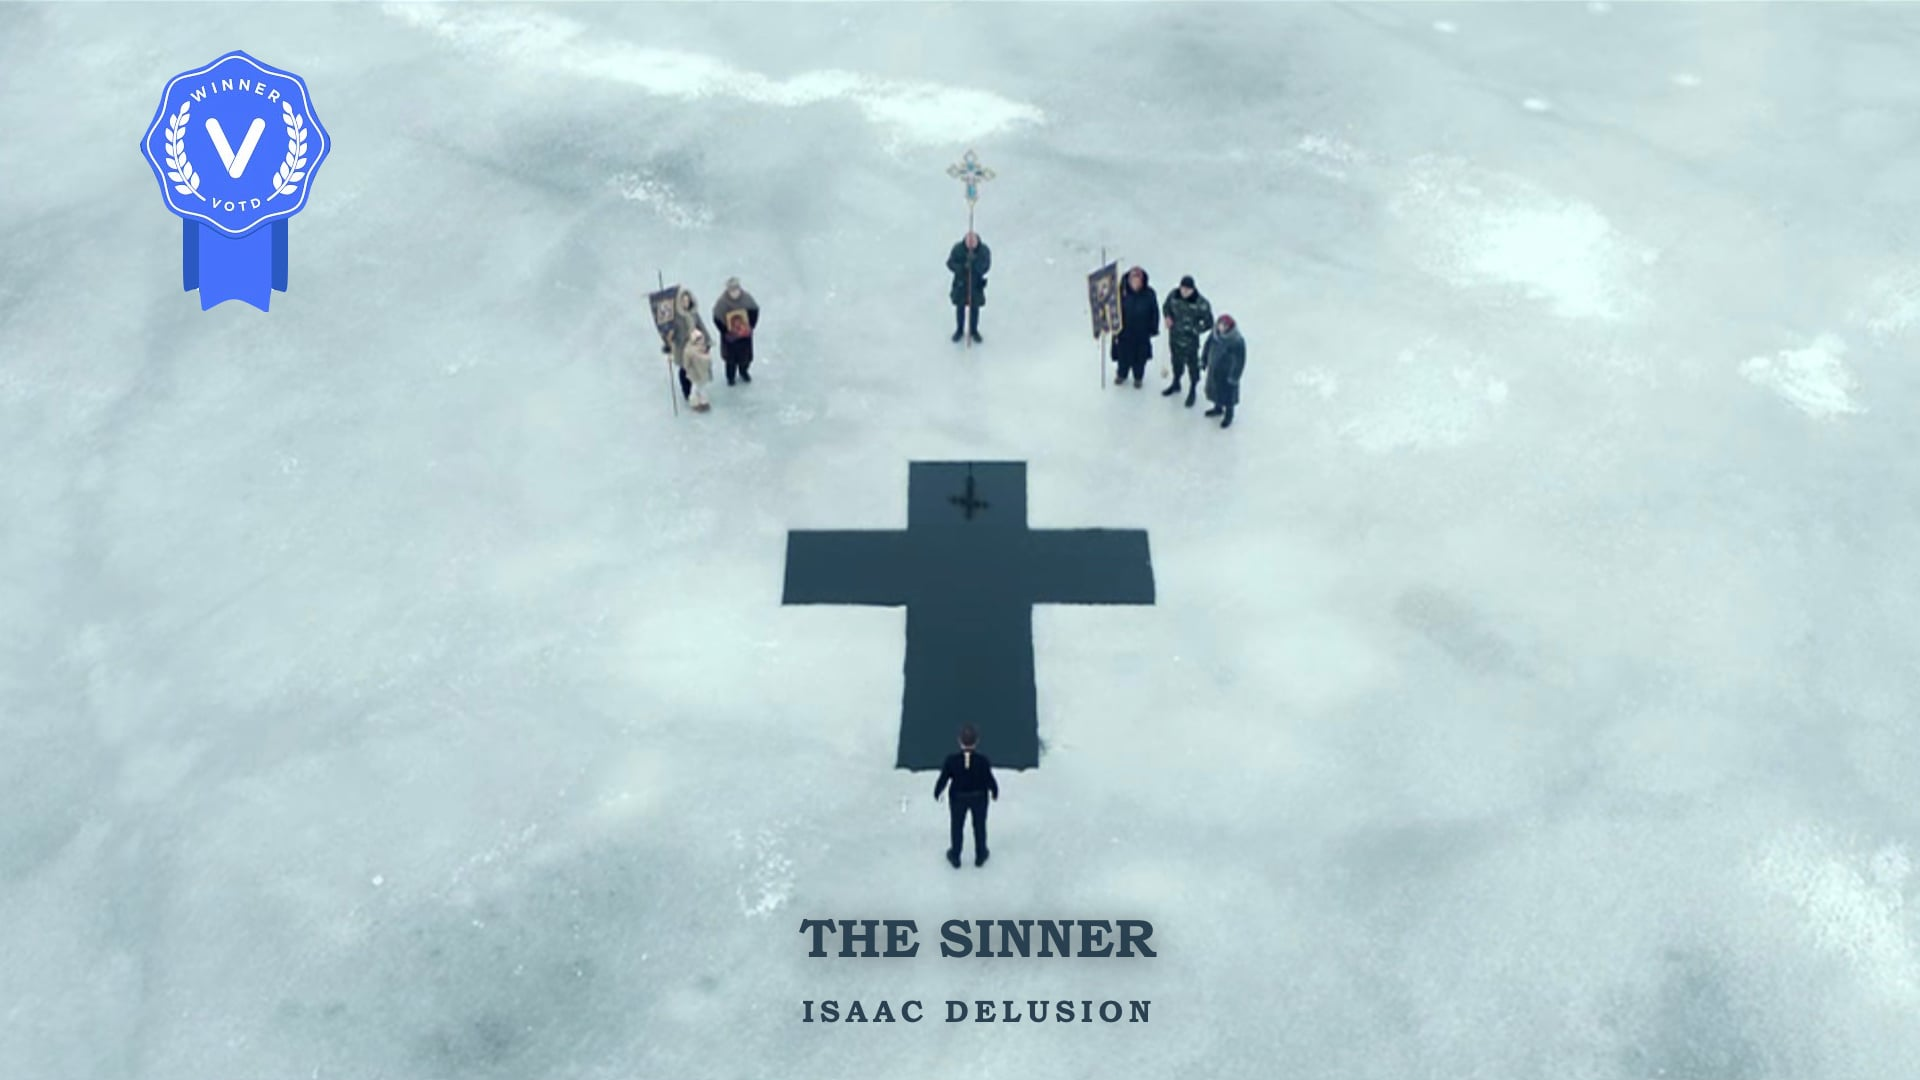 ISAAC DELUSION - THE SINNER